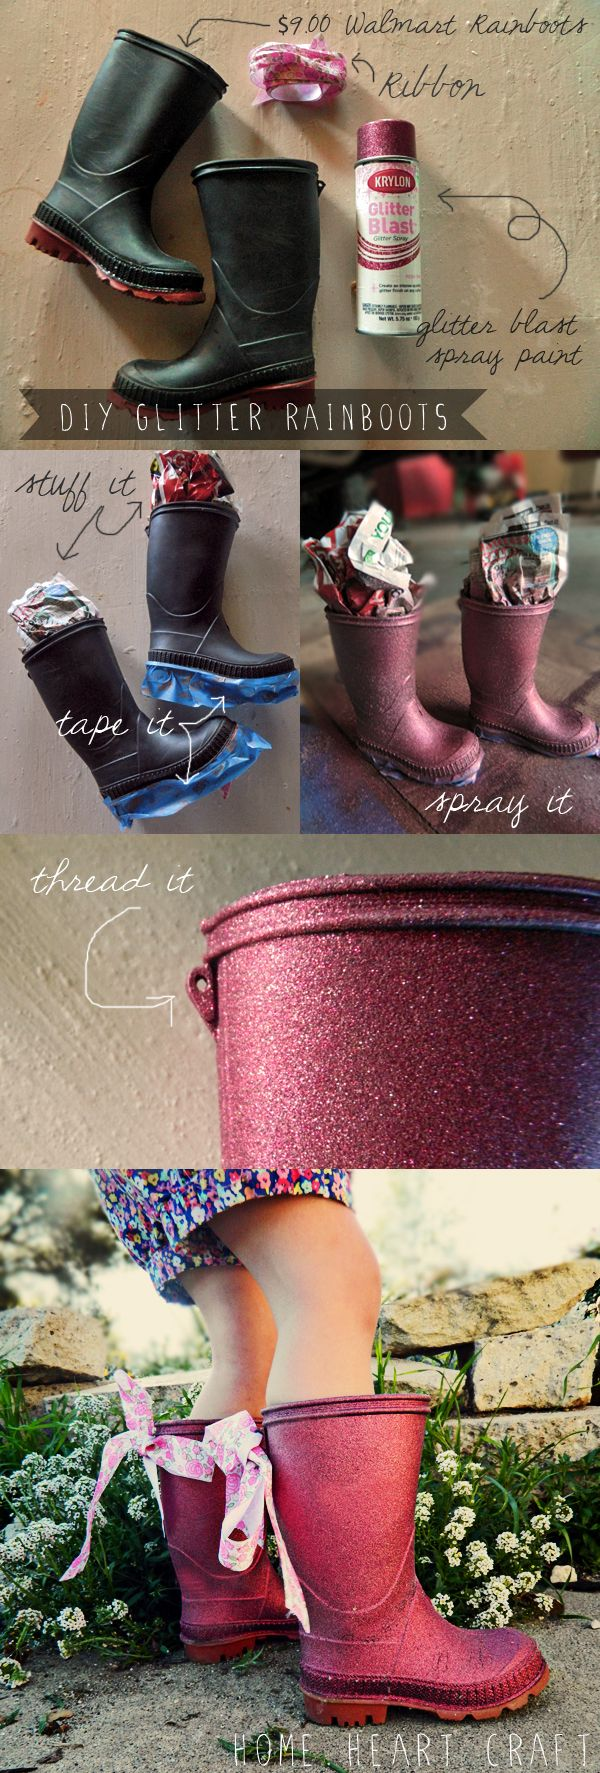 DIY Glitter Wellies